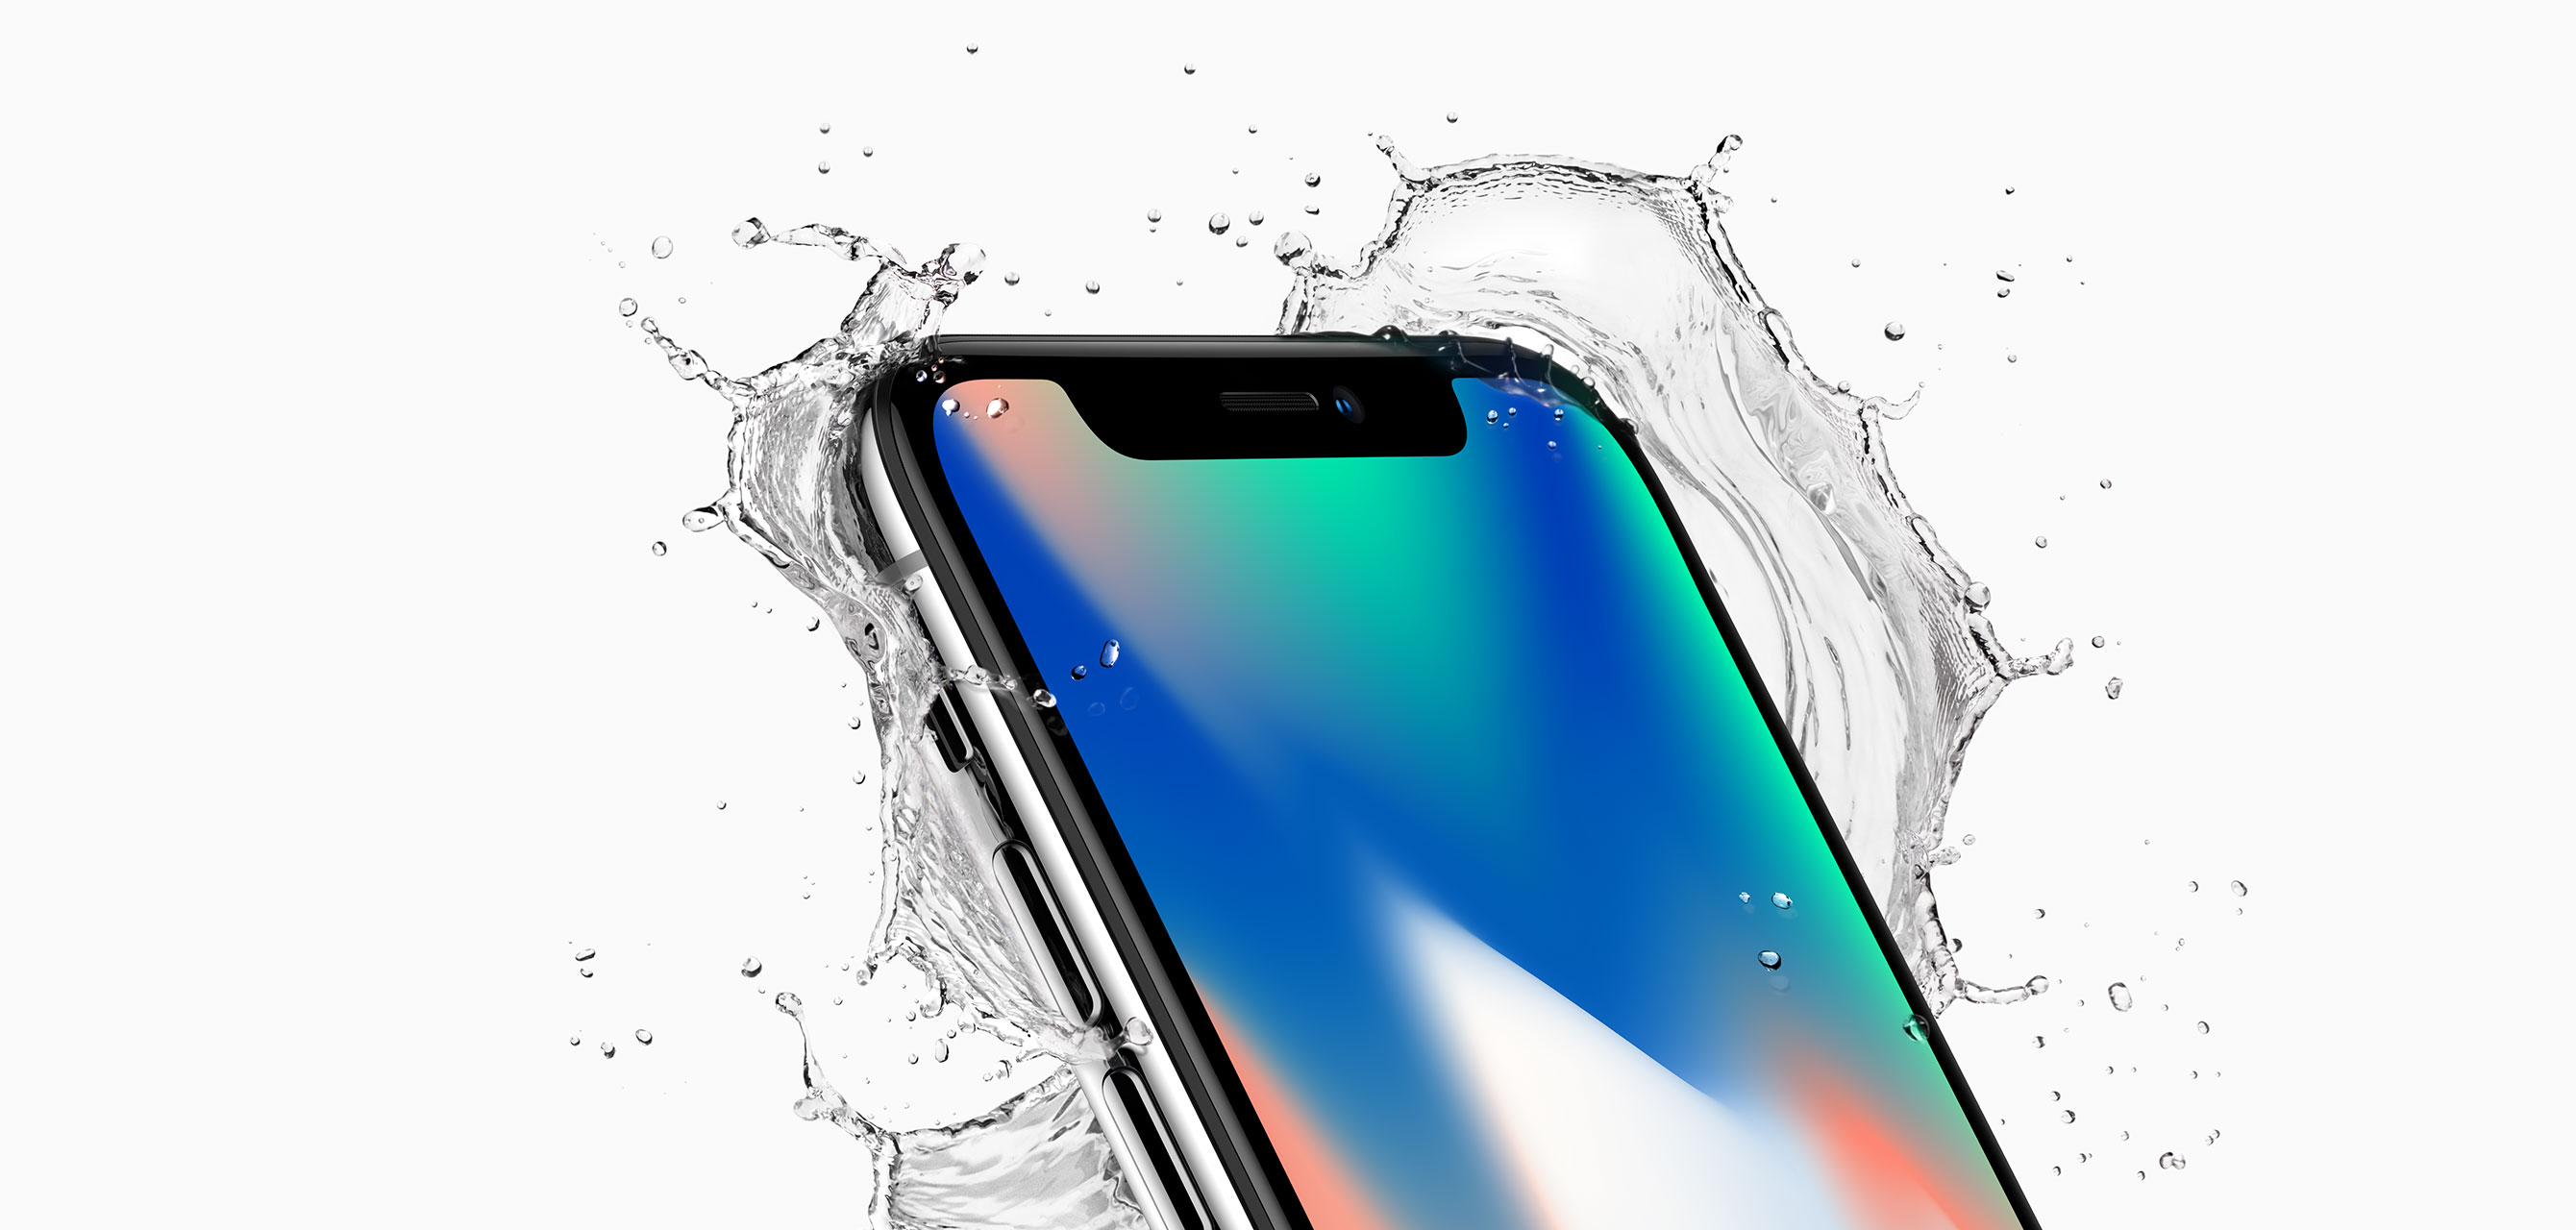 The Best Waterproof Cases For Iphone X Cell Phone Shield With Charger